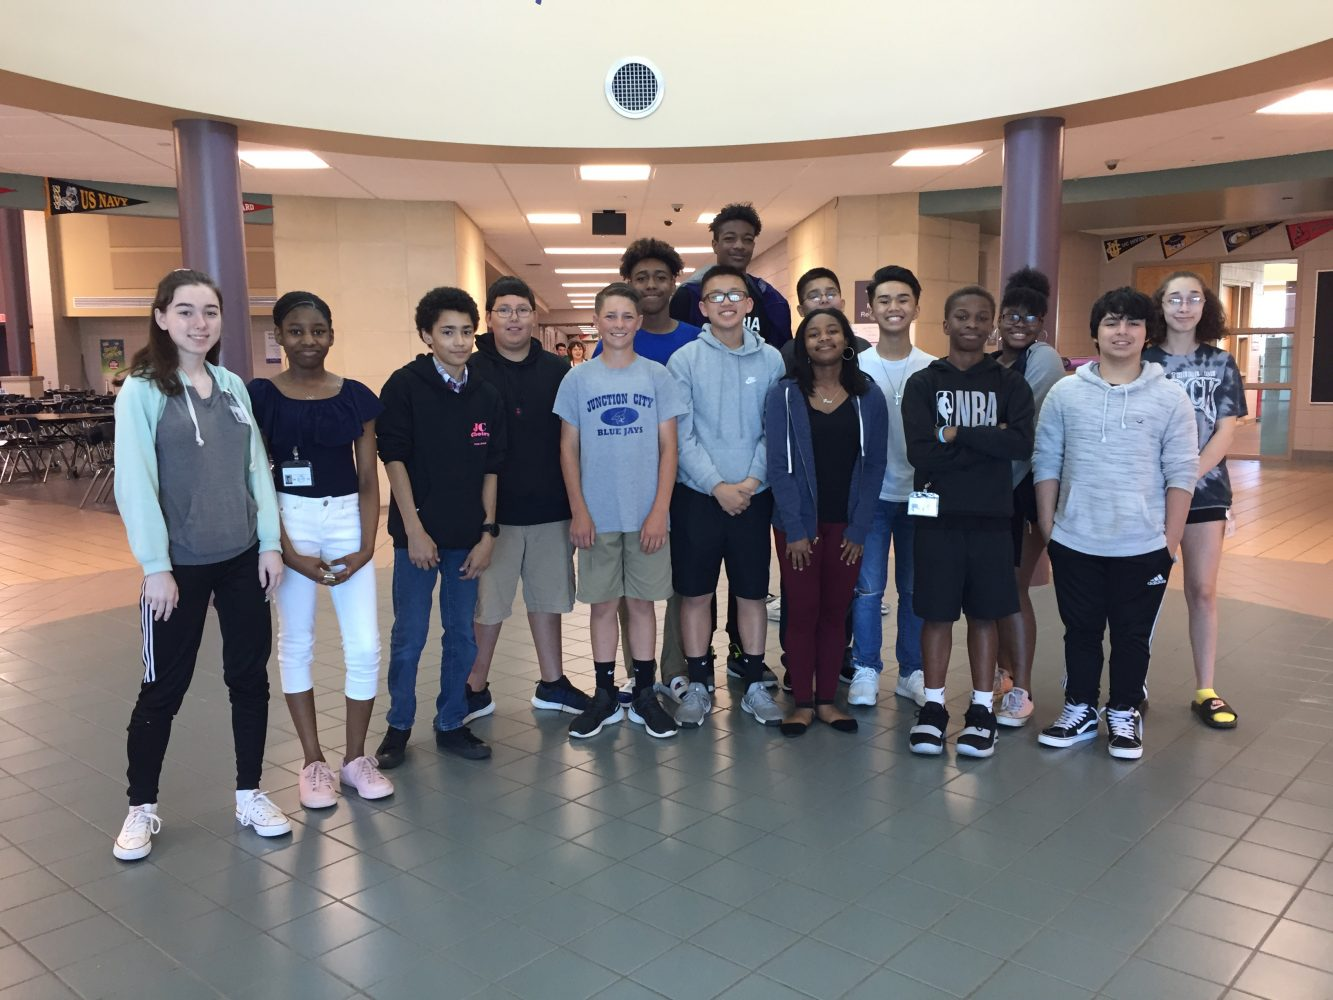 Junction City Middle School students who are mentors to incoming 6th graders